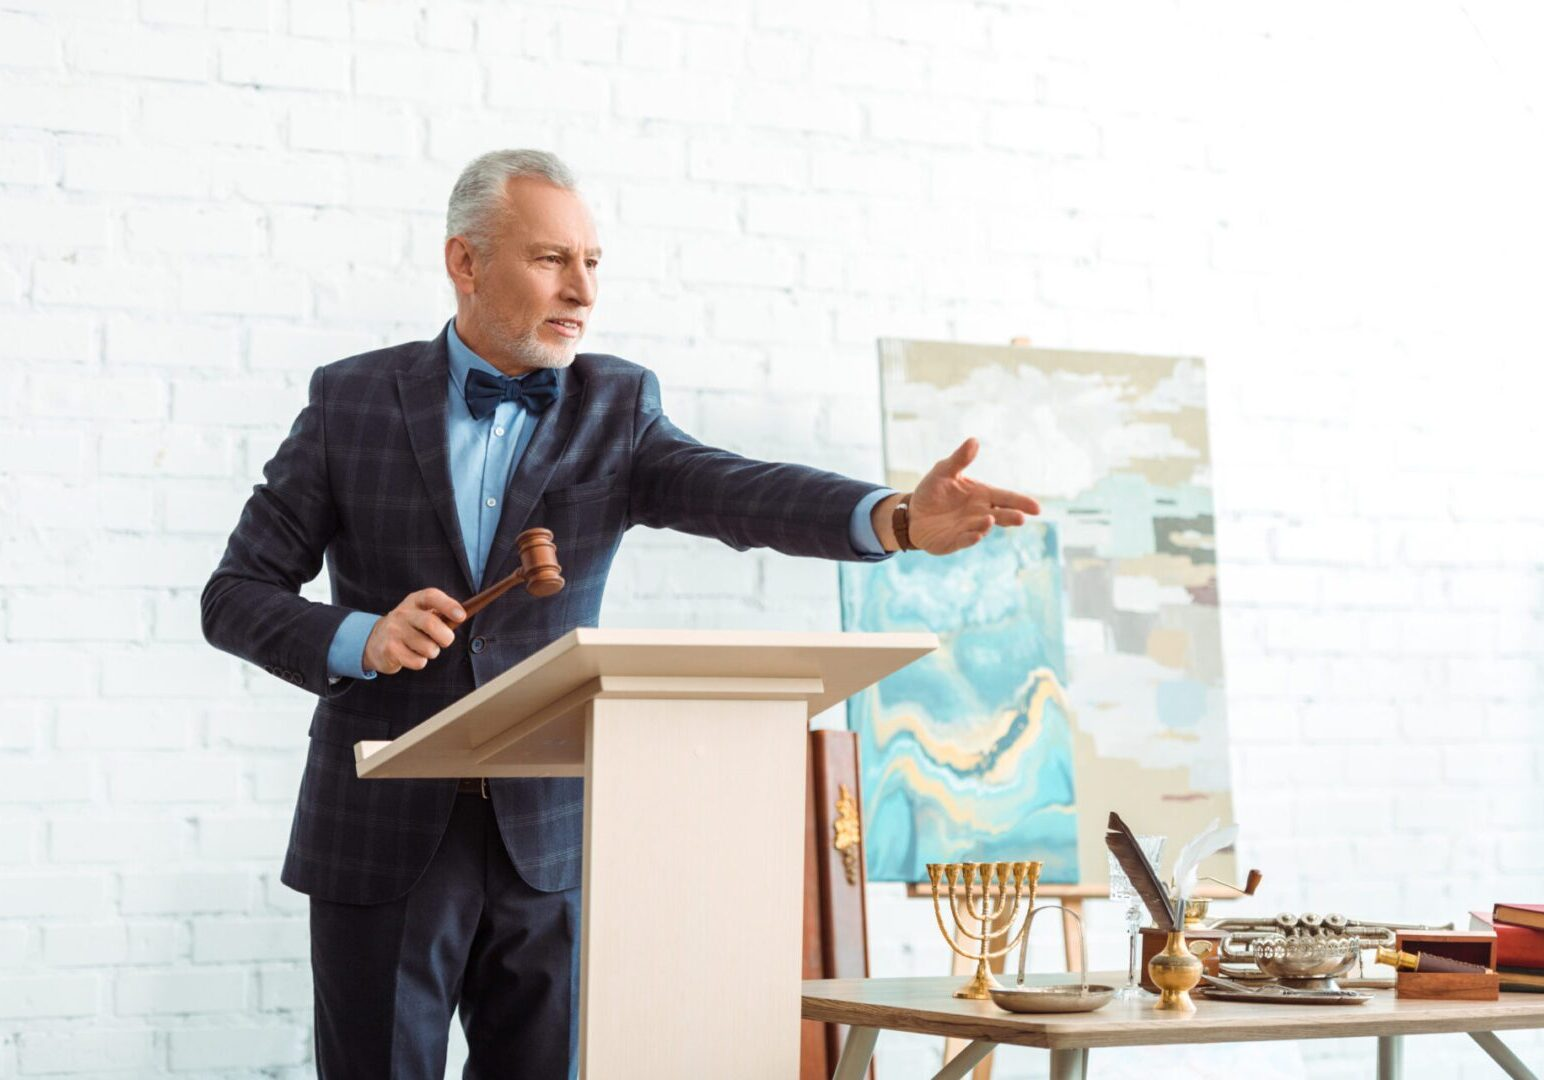 handsome auctioneer holding wooden gavel and pointing with hand during auction